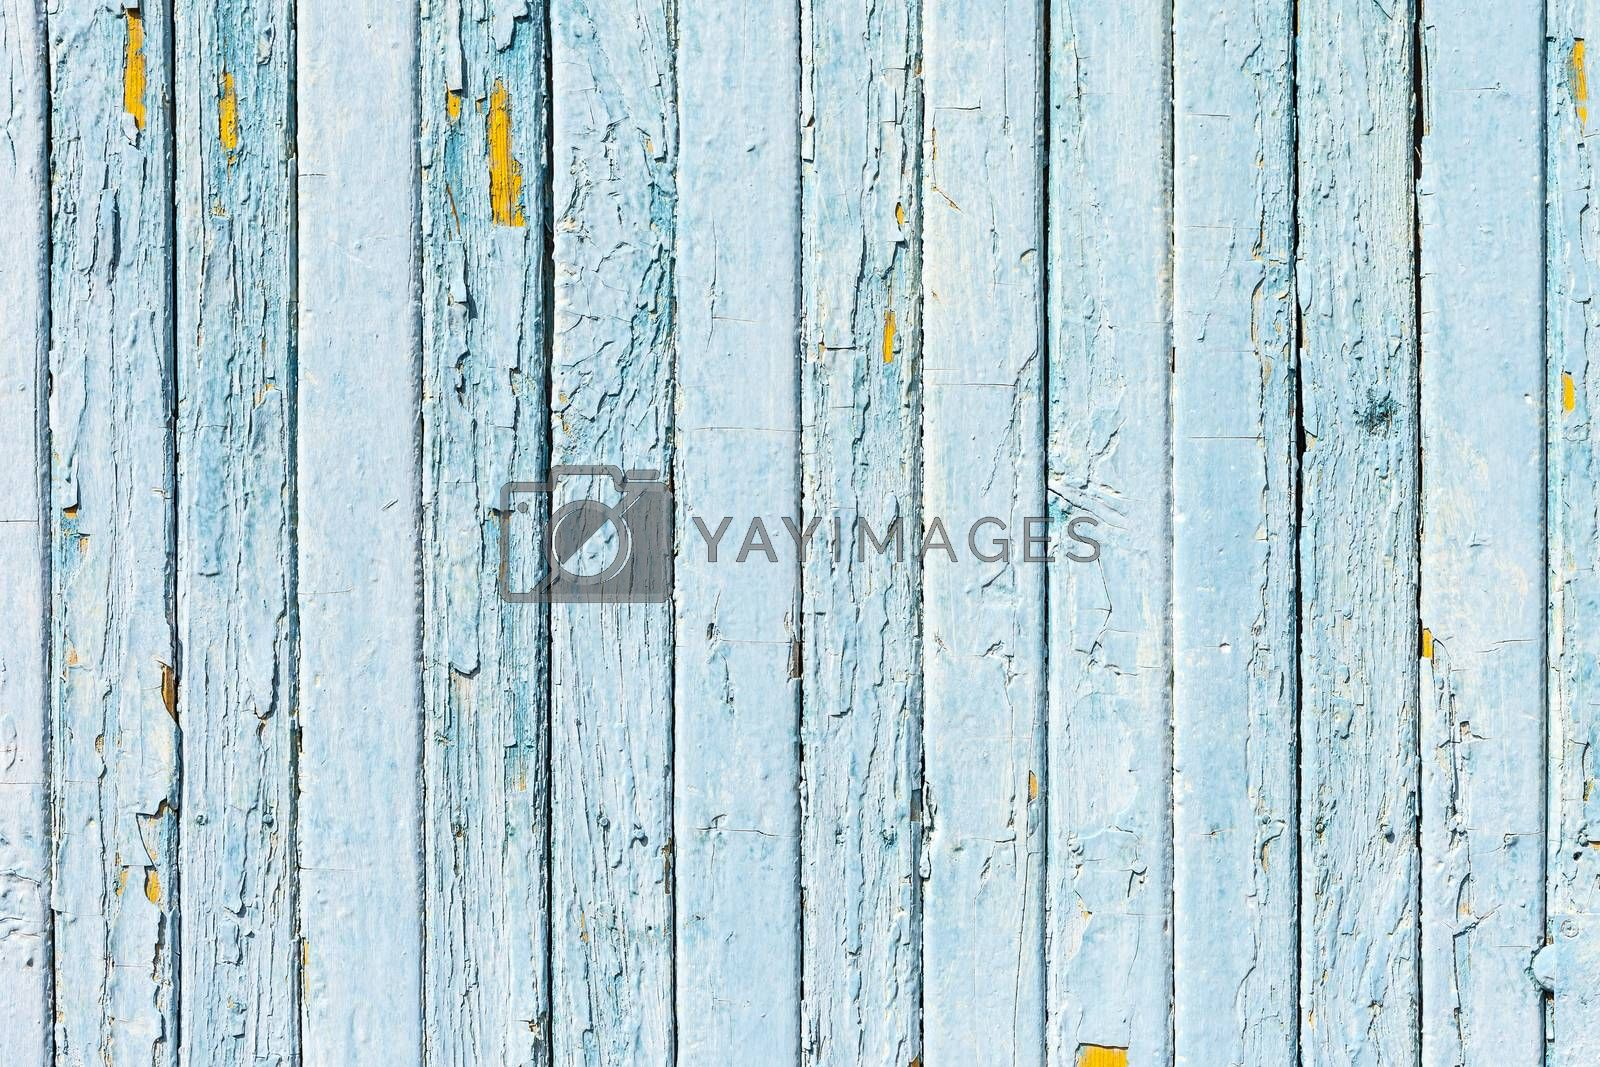 Royalty free image of Vintage Blue background wood wall, concept by H2Oshka